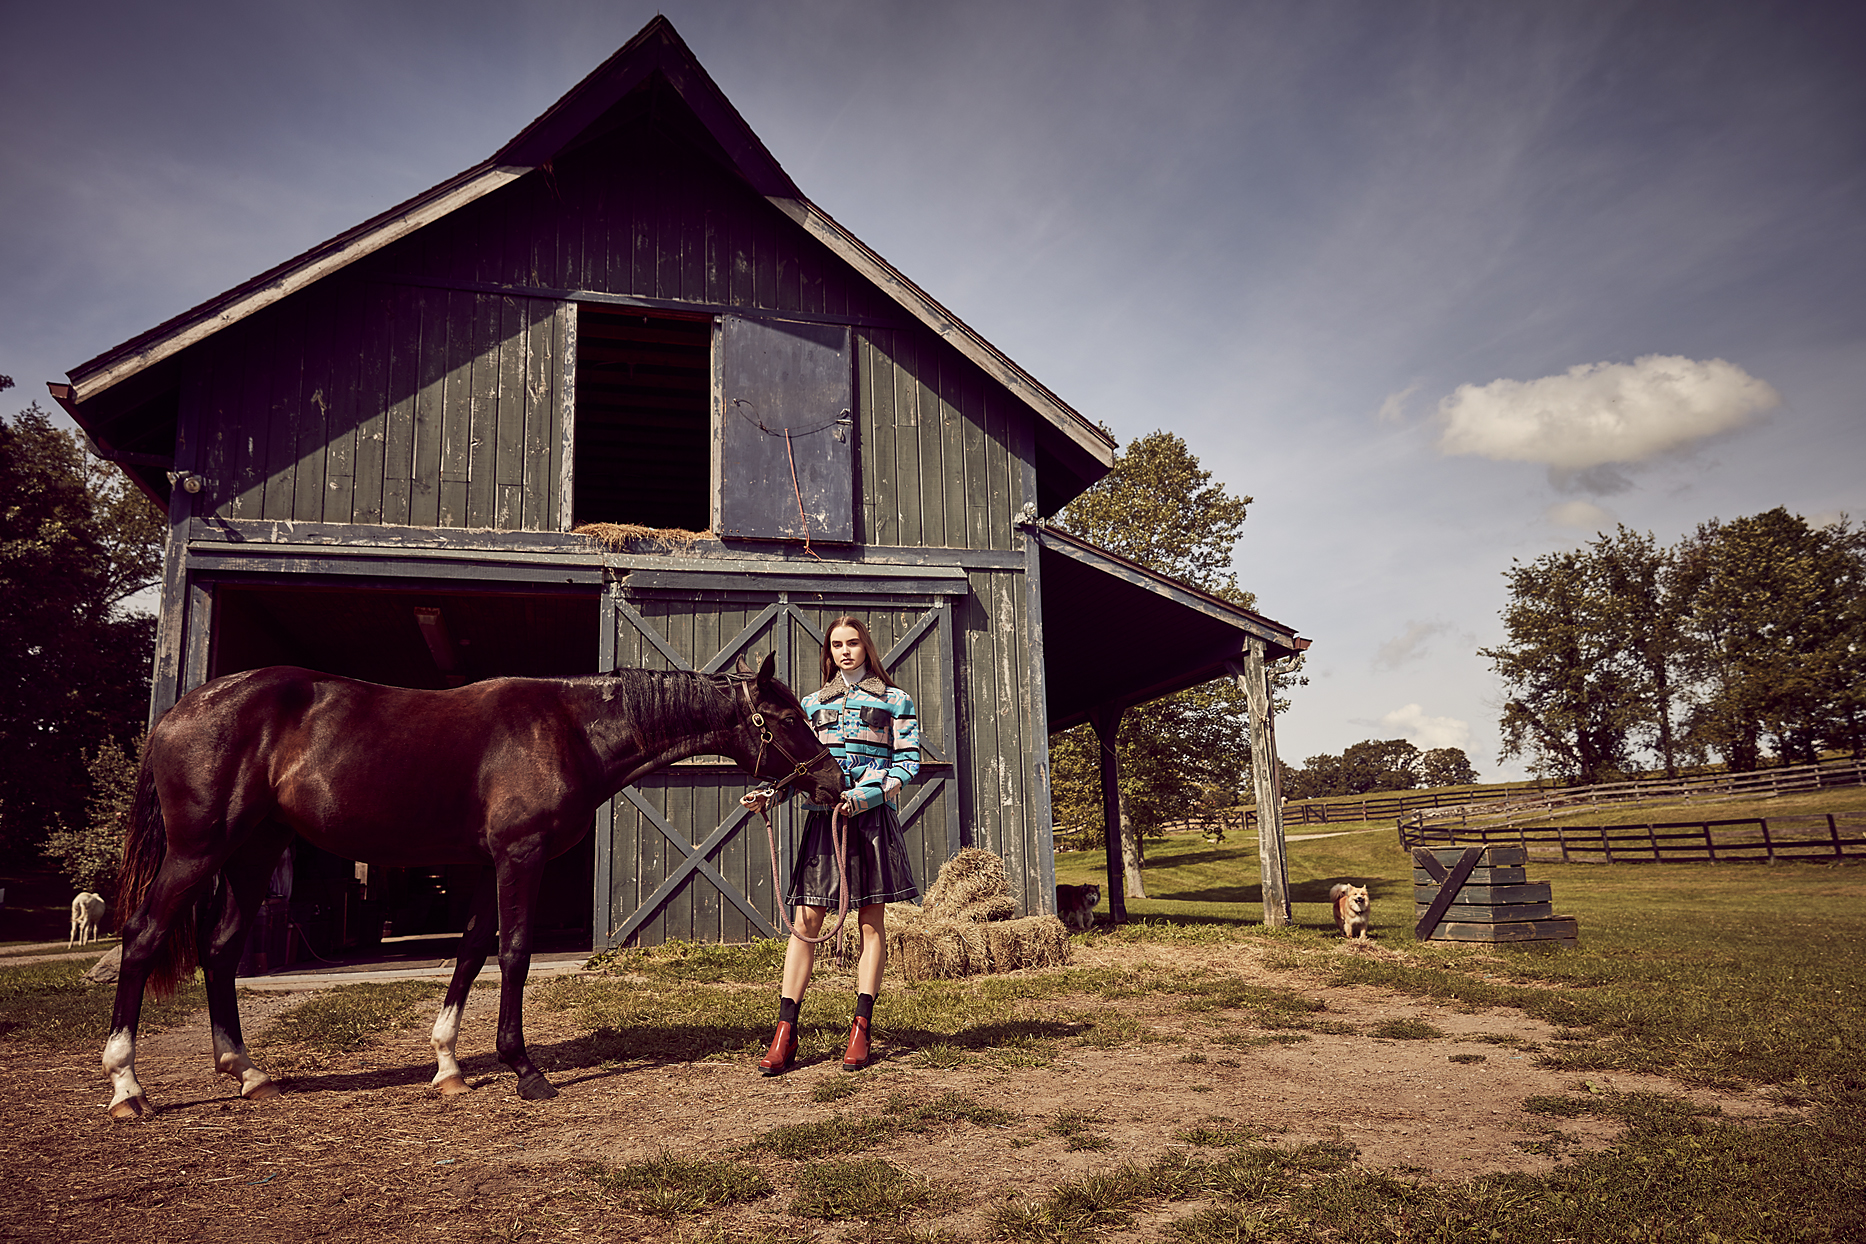 Woman with light blue jacket tending to a dark brown horse in front of an old barn - Mark DeLong: Fashion Gallery